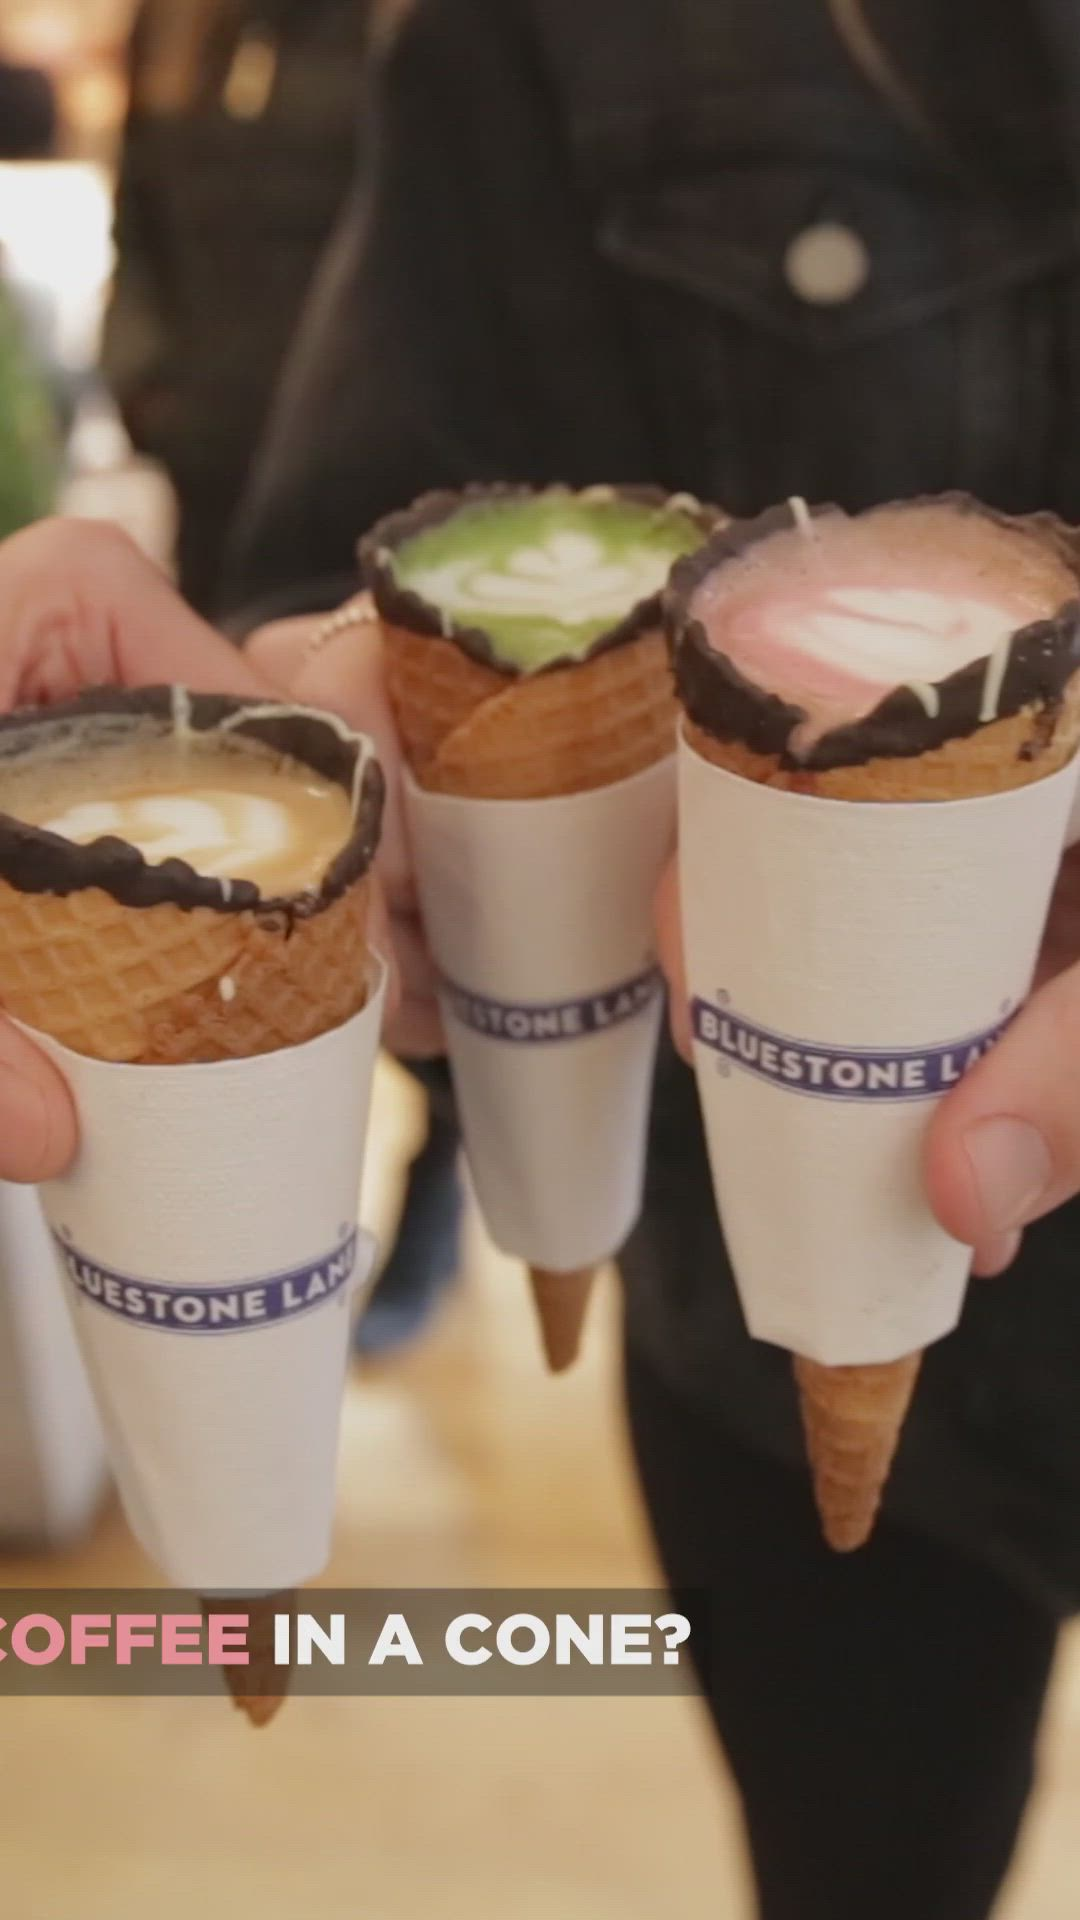 Coffee In A Cone Video Cafe Food Coffee In A Cone Coffee Recipes